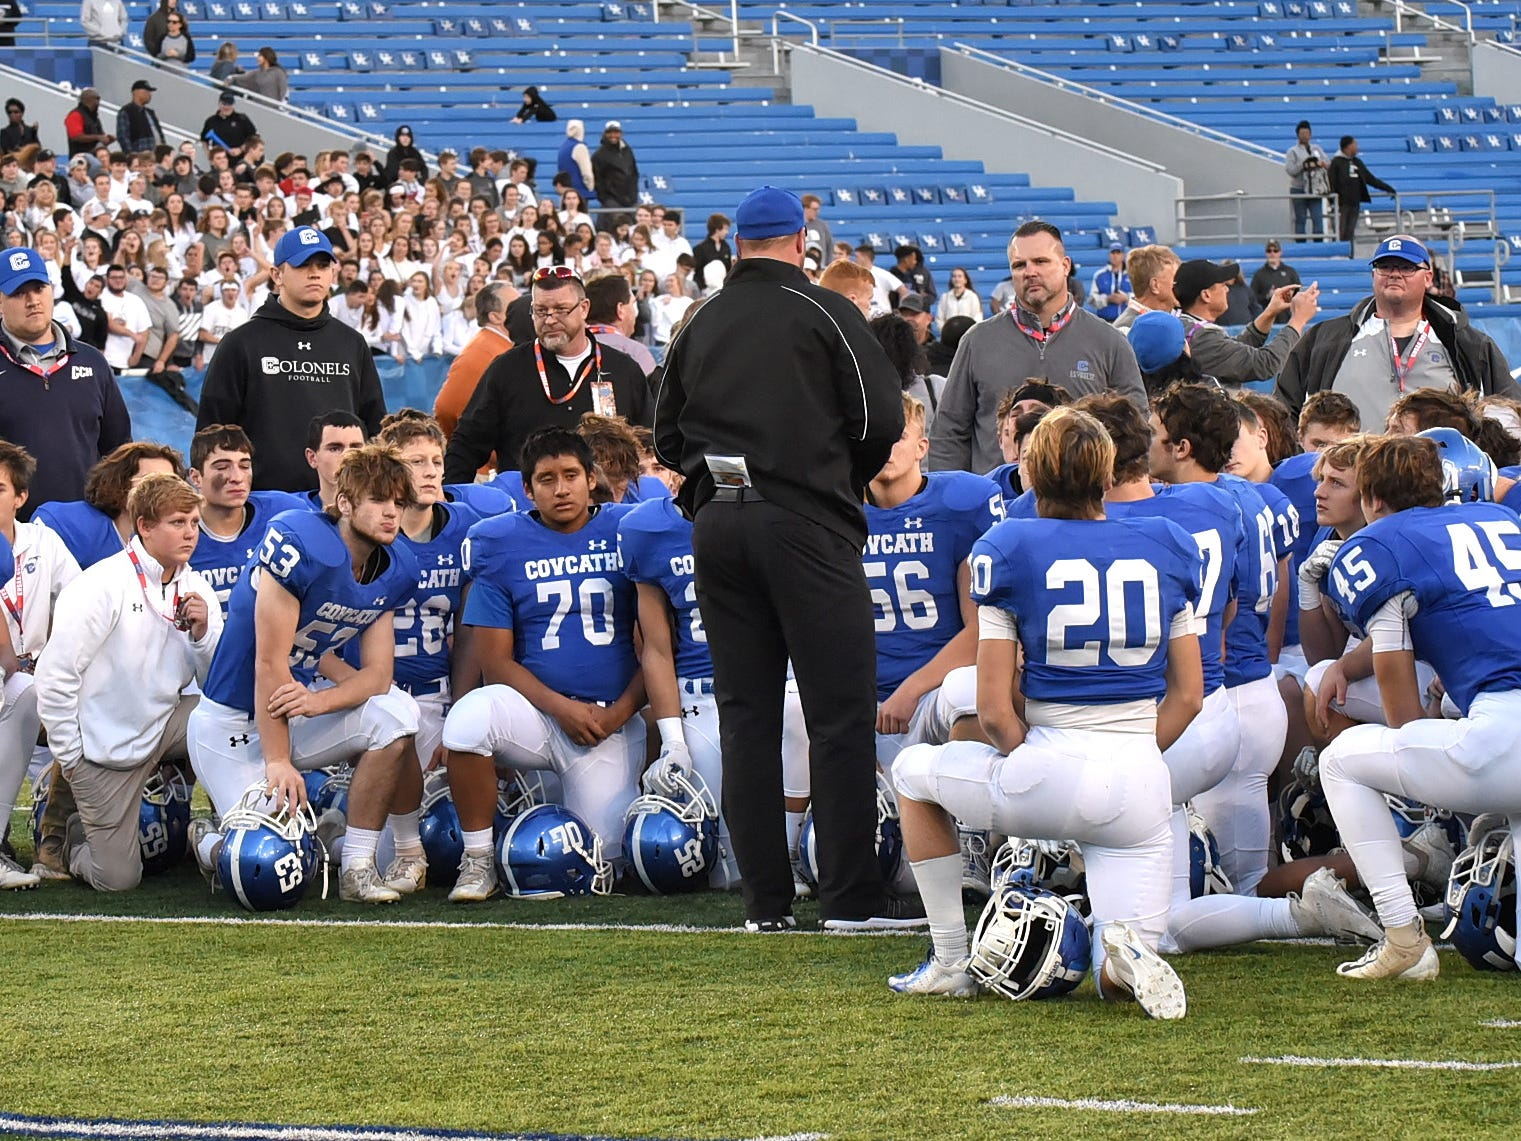 The Covington Catholic Colonels huddle as a team one last time closing out the 2018 campign 14-1 and KHSAA 5a State Runners up, December 2, 2018.